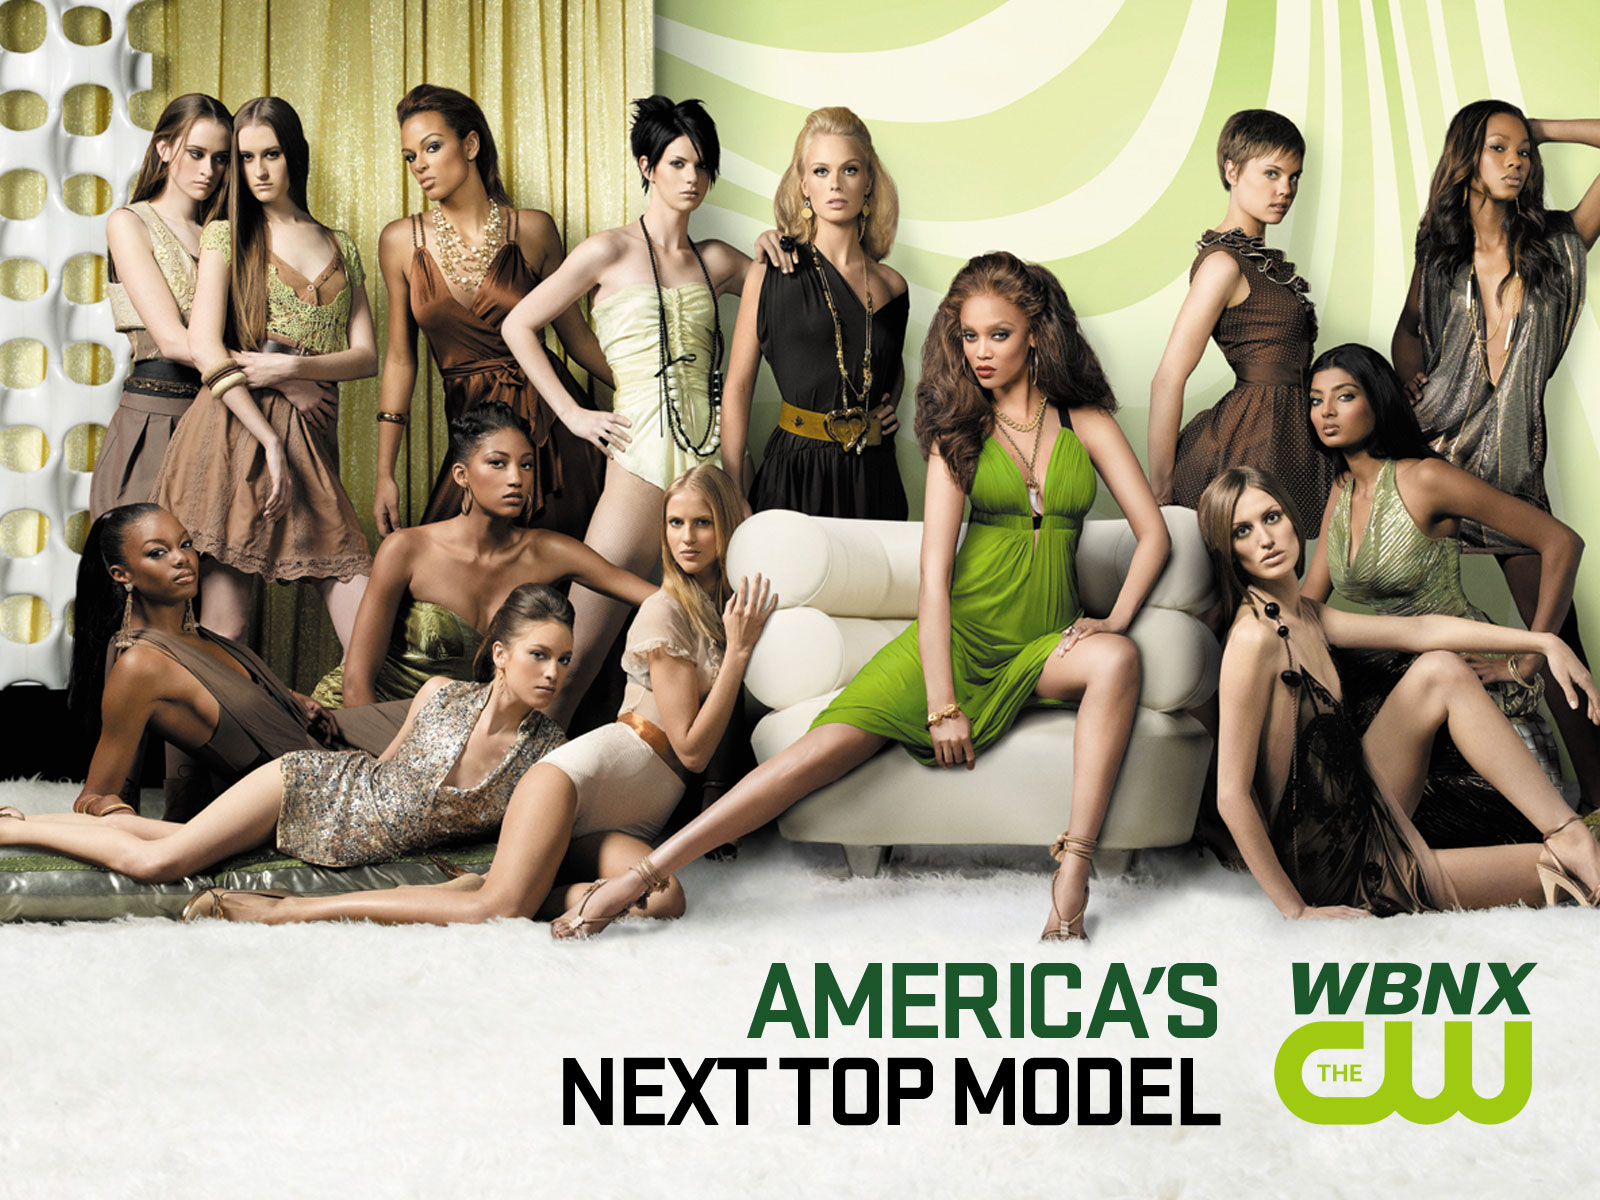 the popularity of americas next top Watch america's next top model online stream episodes and clips of america's  next top model instantly.